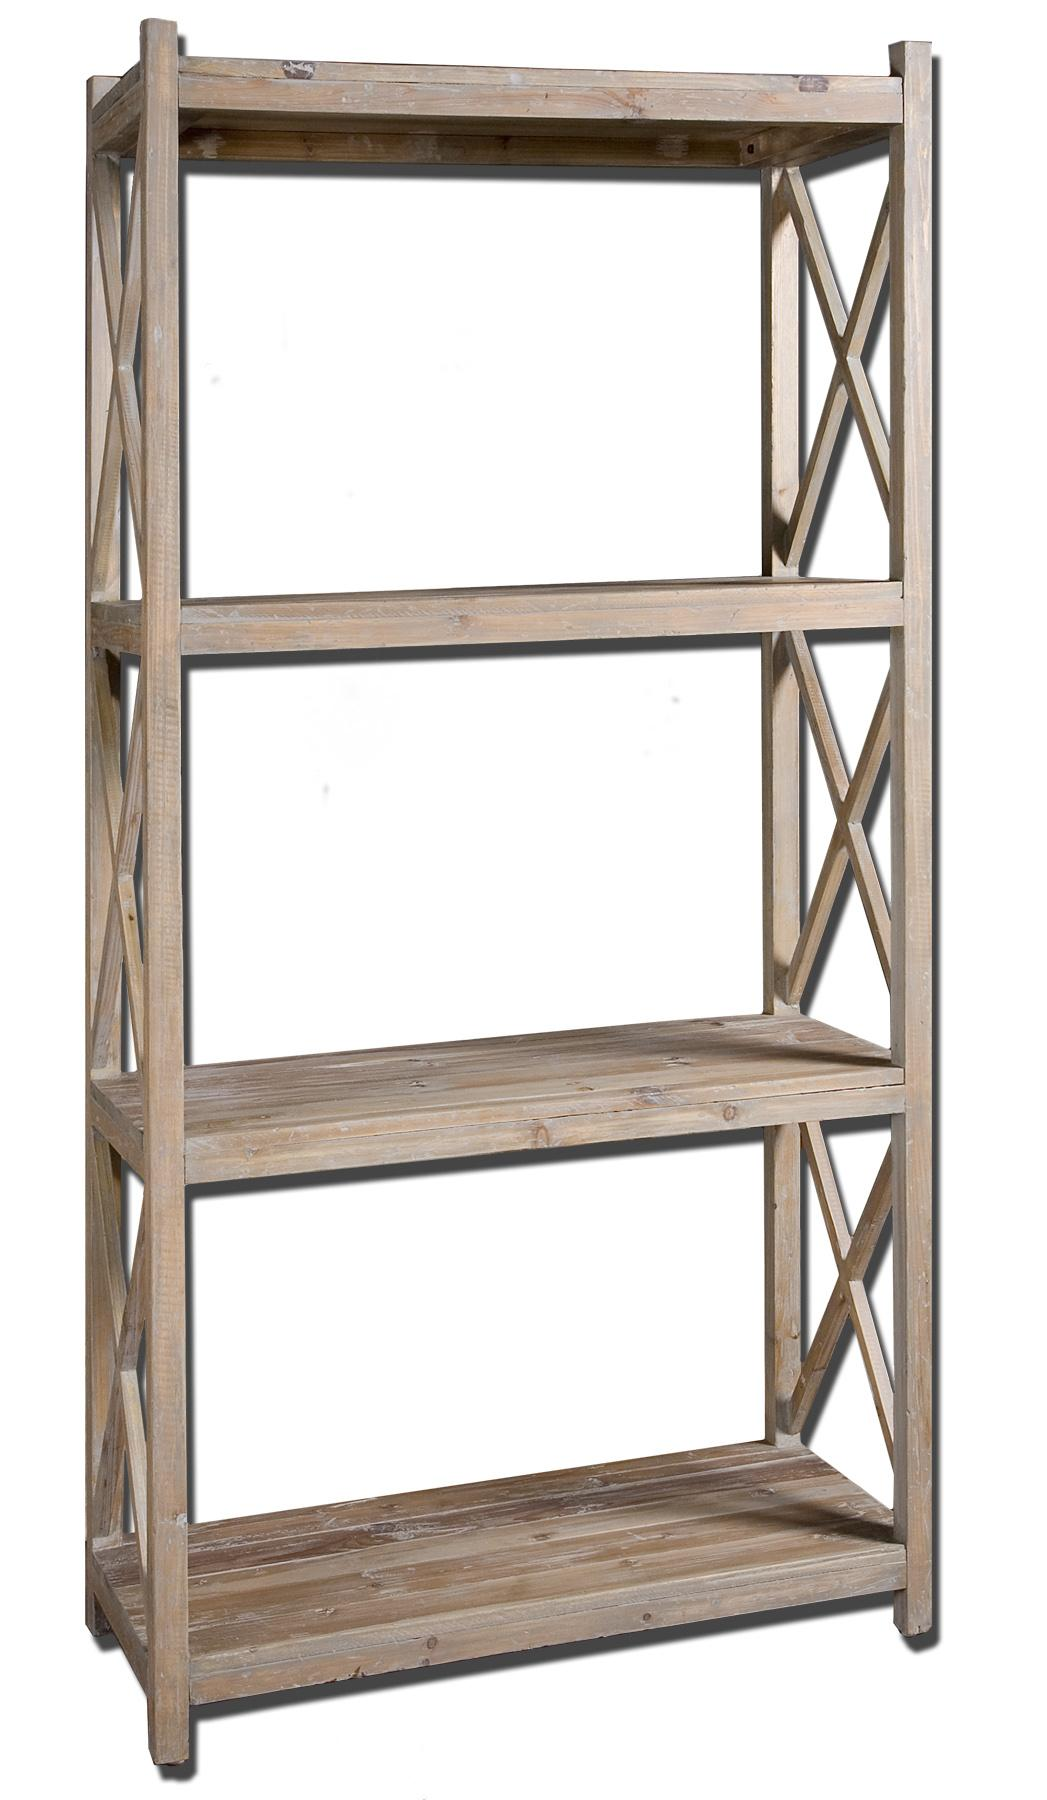 Uttermost Accent Furniture Stratford Etagere - Item Number: 24248